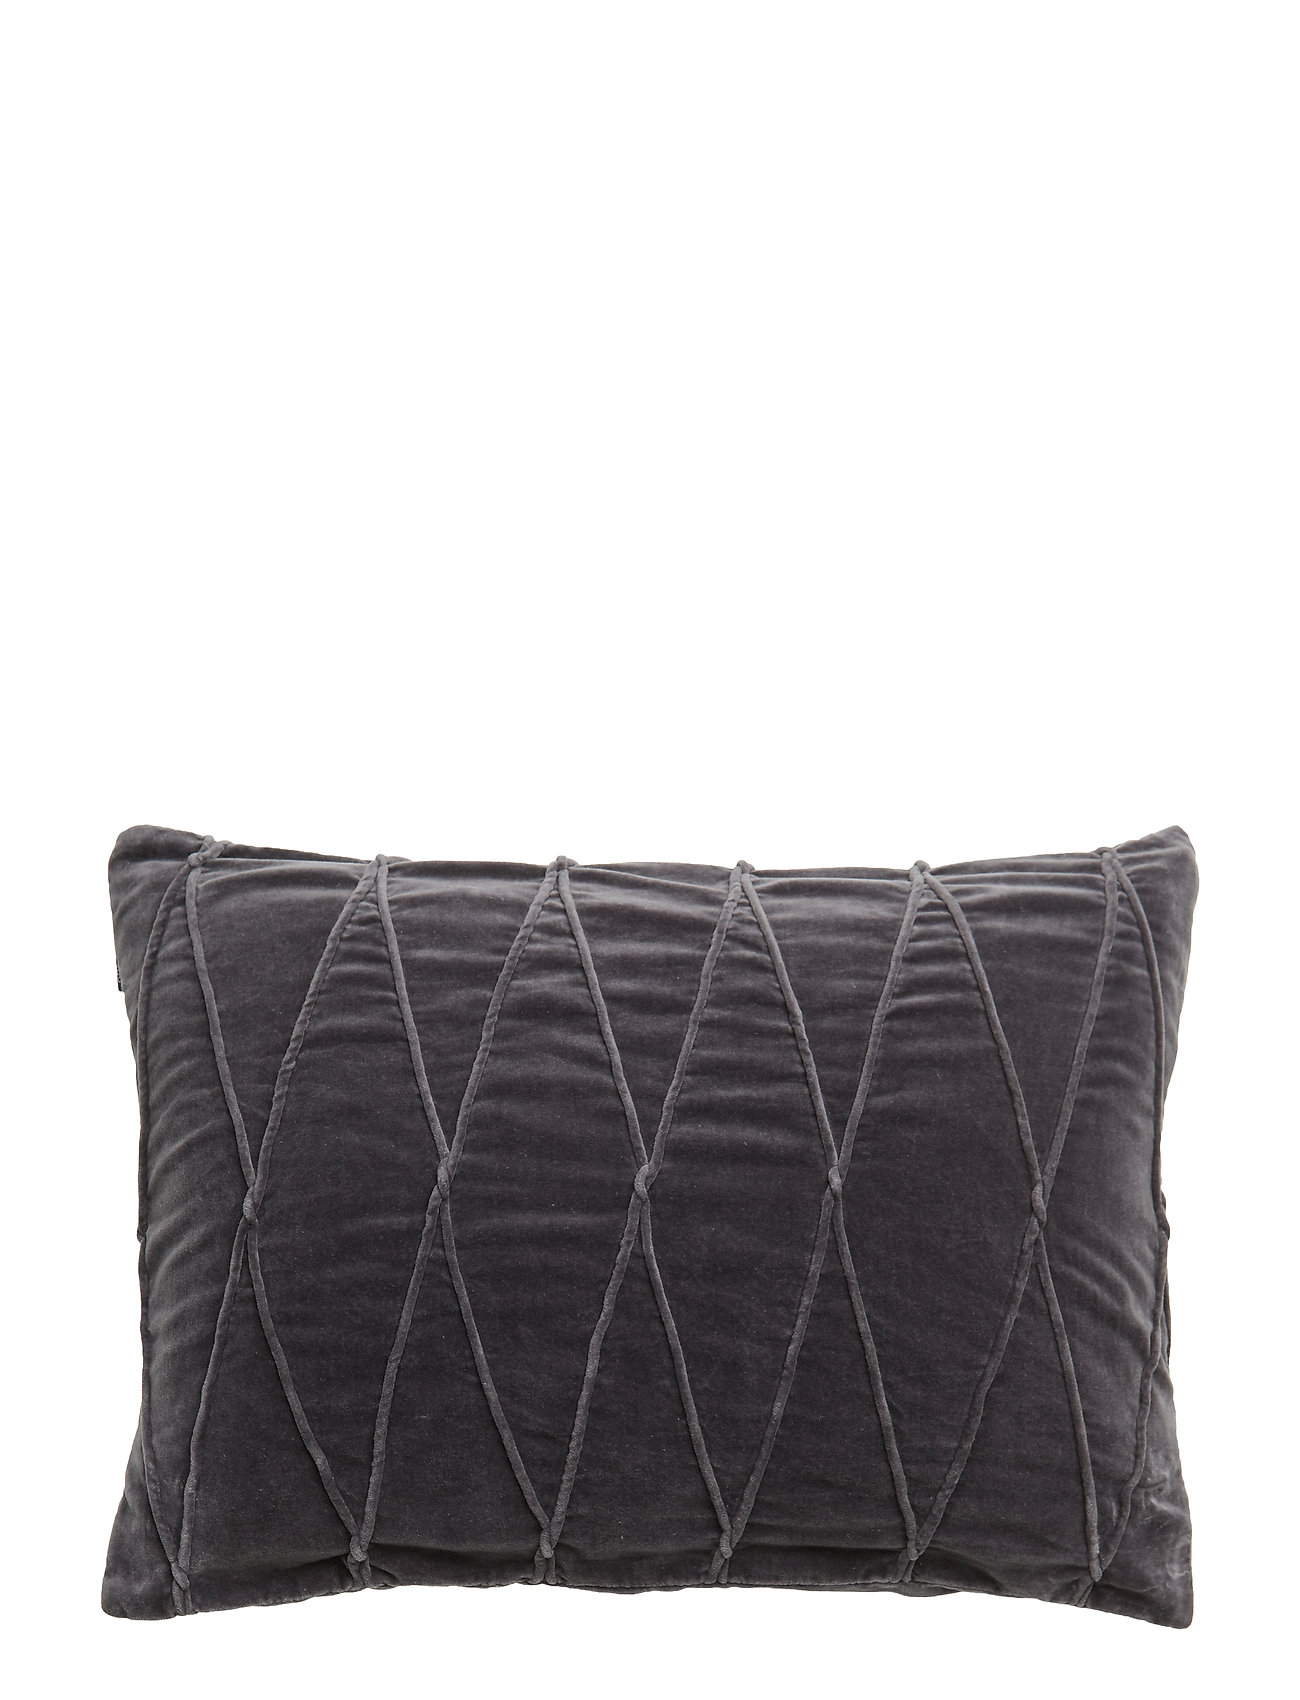 Gripsholm CUSHION COVER INA GOTS - ANTHRACITE